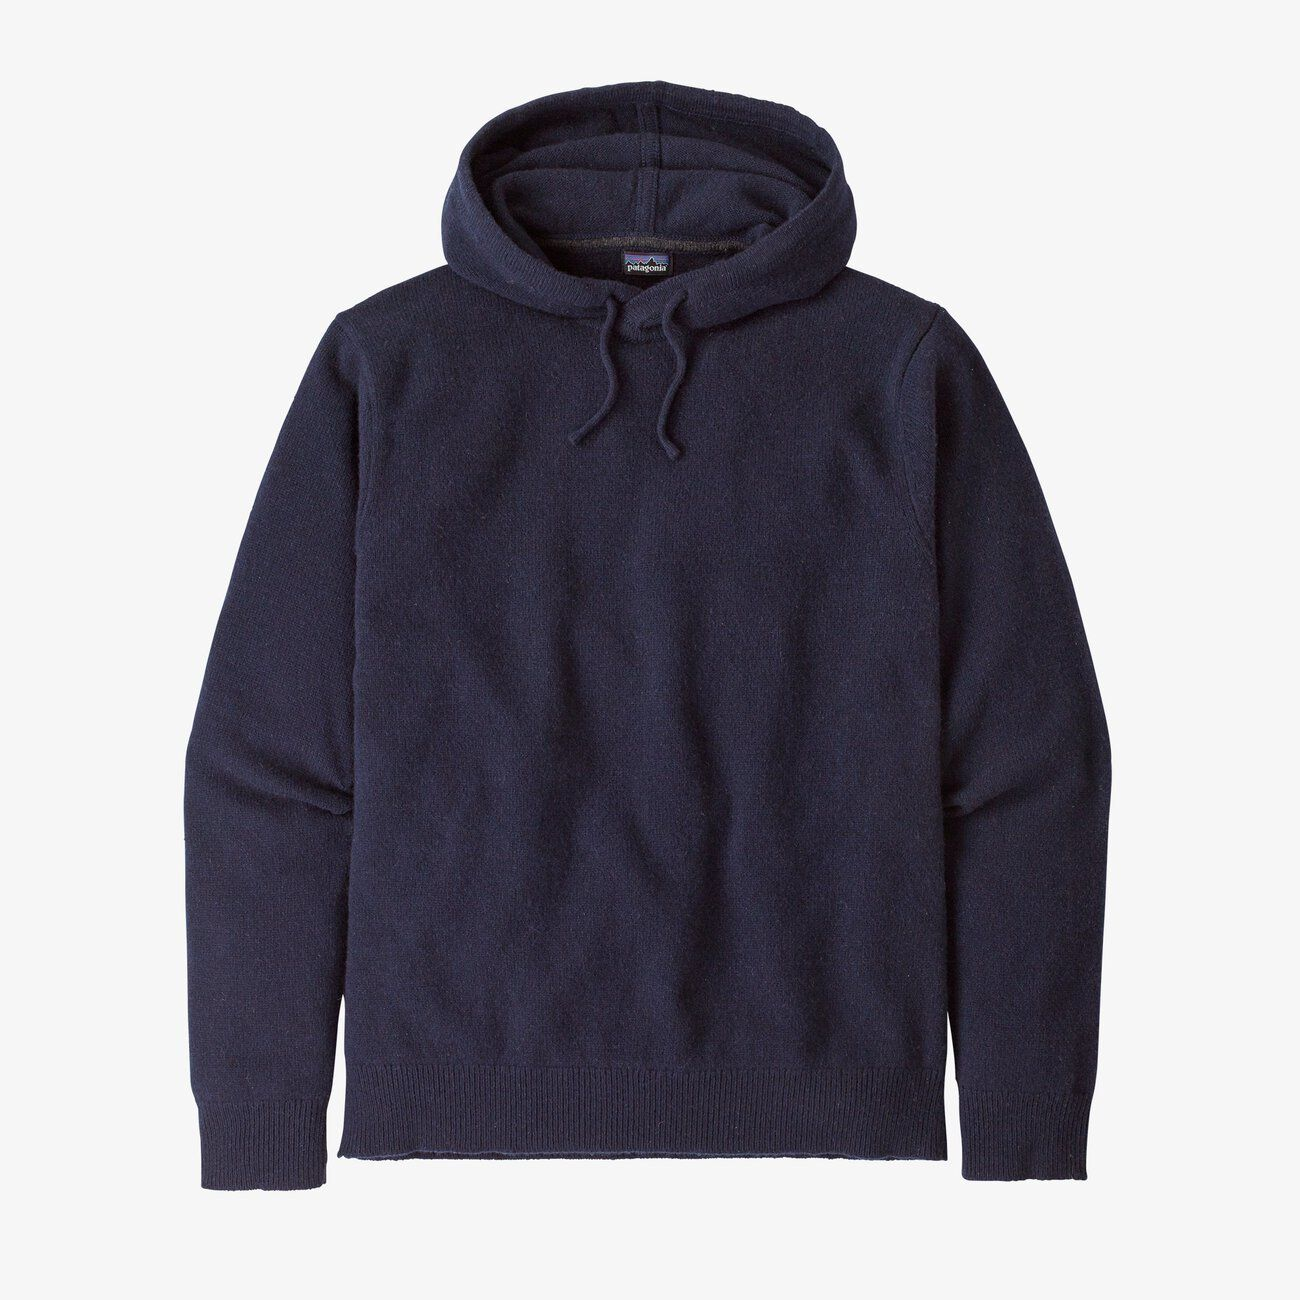 Patagonia Men S Recycled Cashmere Hoody Pullover Wool Sweater Men Hoodies Cashmere Hoodie [ 1300 x 1300 Pixel ]